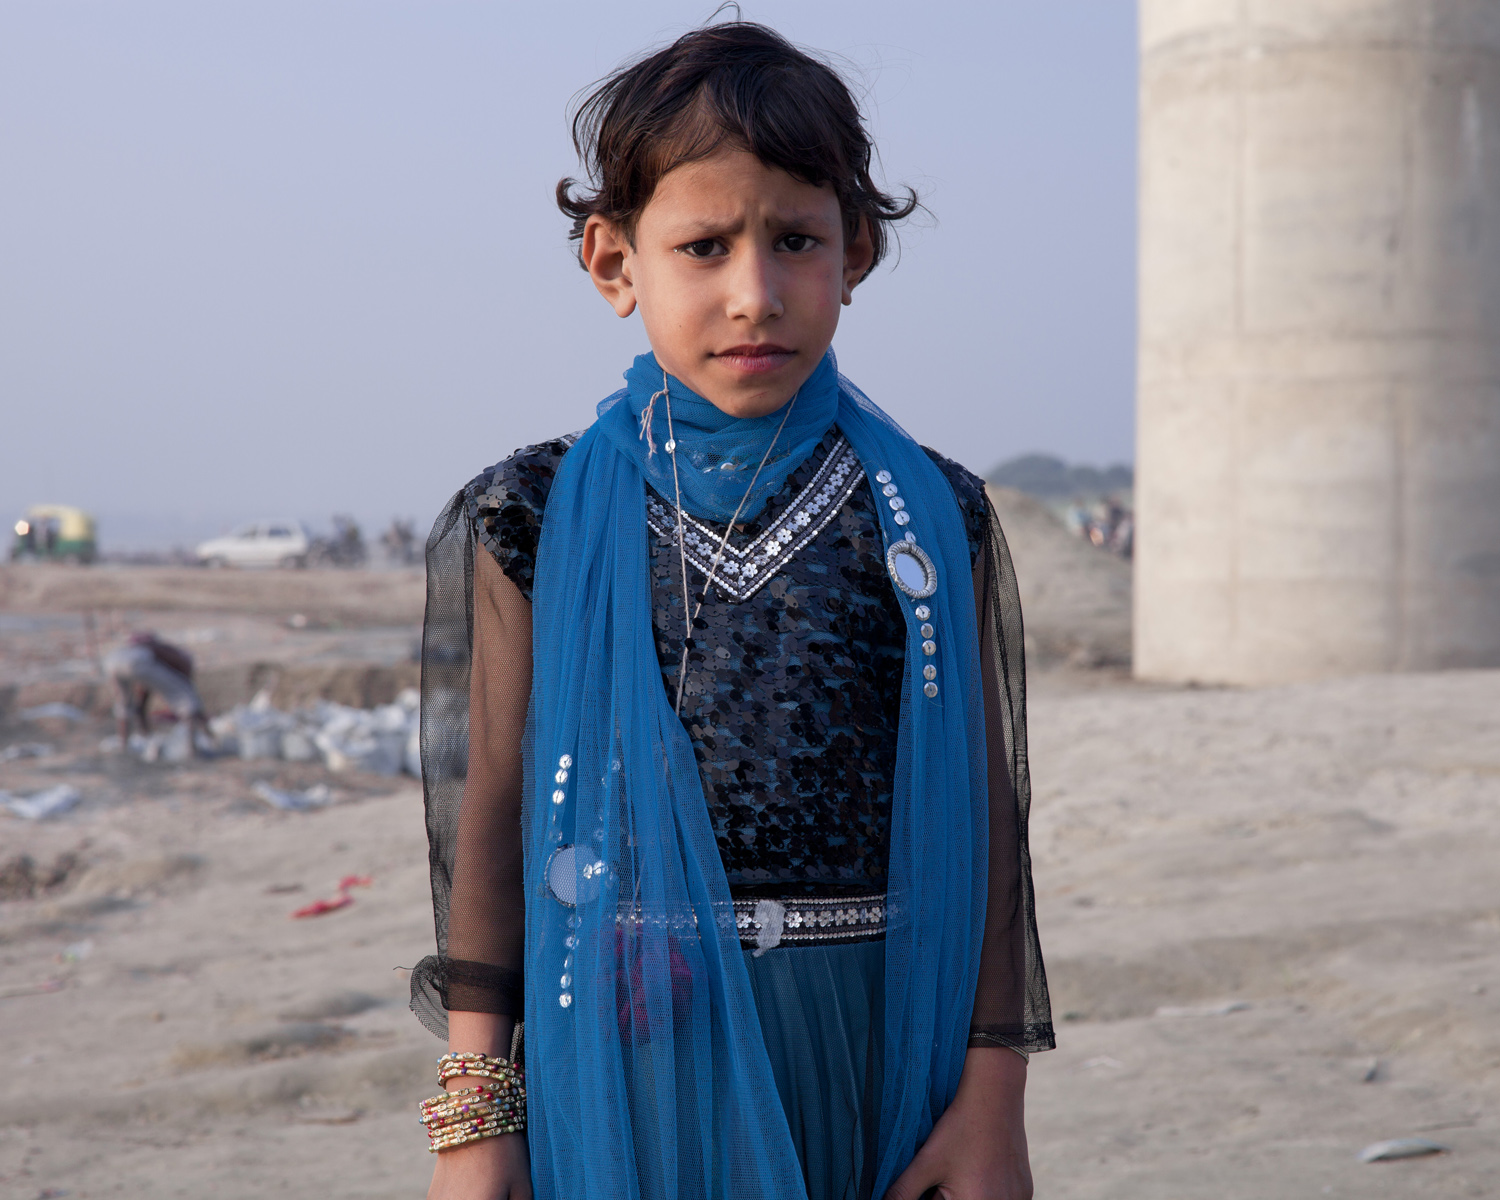 varanasi-bridge-ganges-river-children-india-mark-hadden-photography